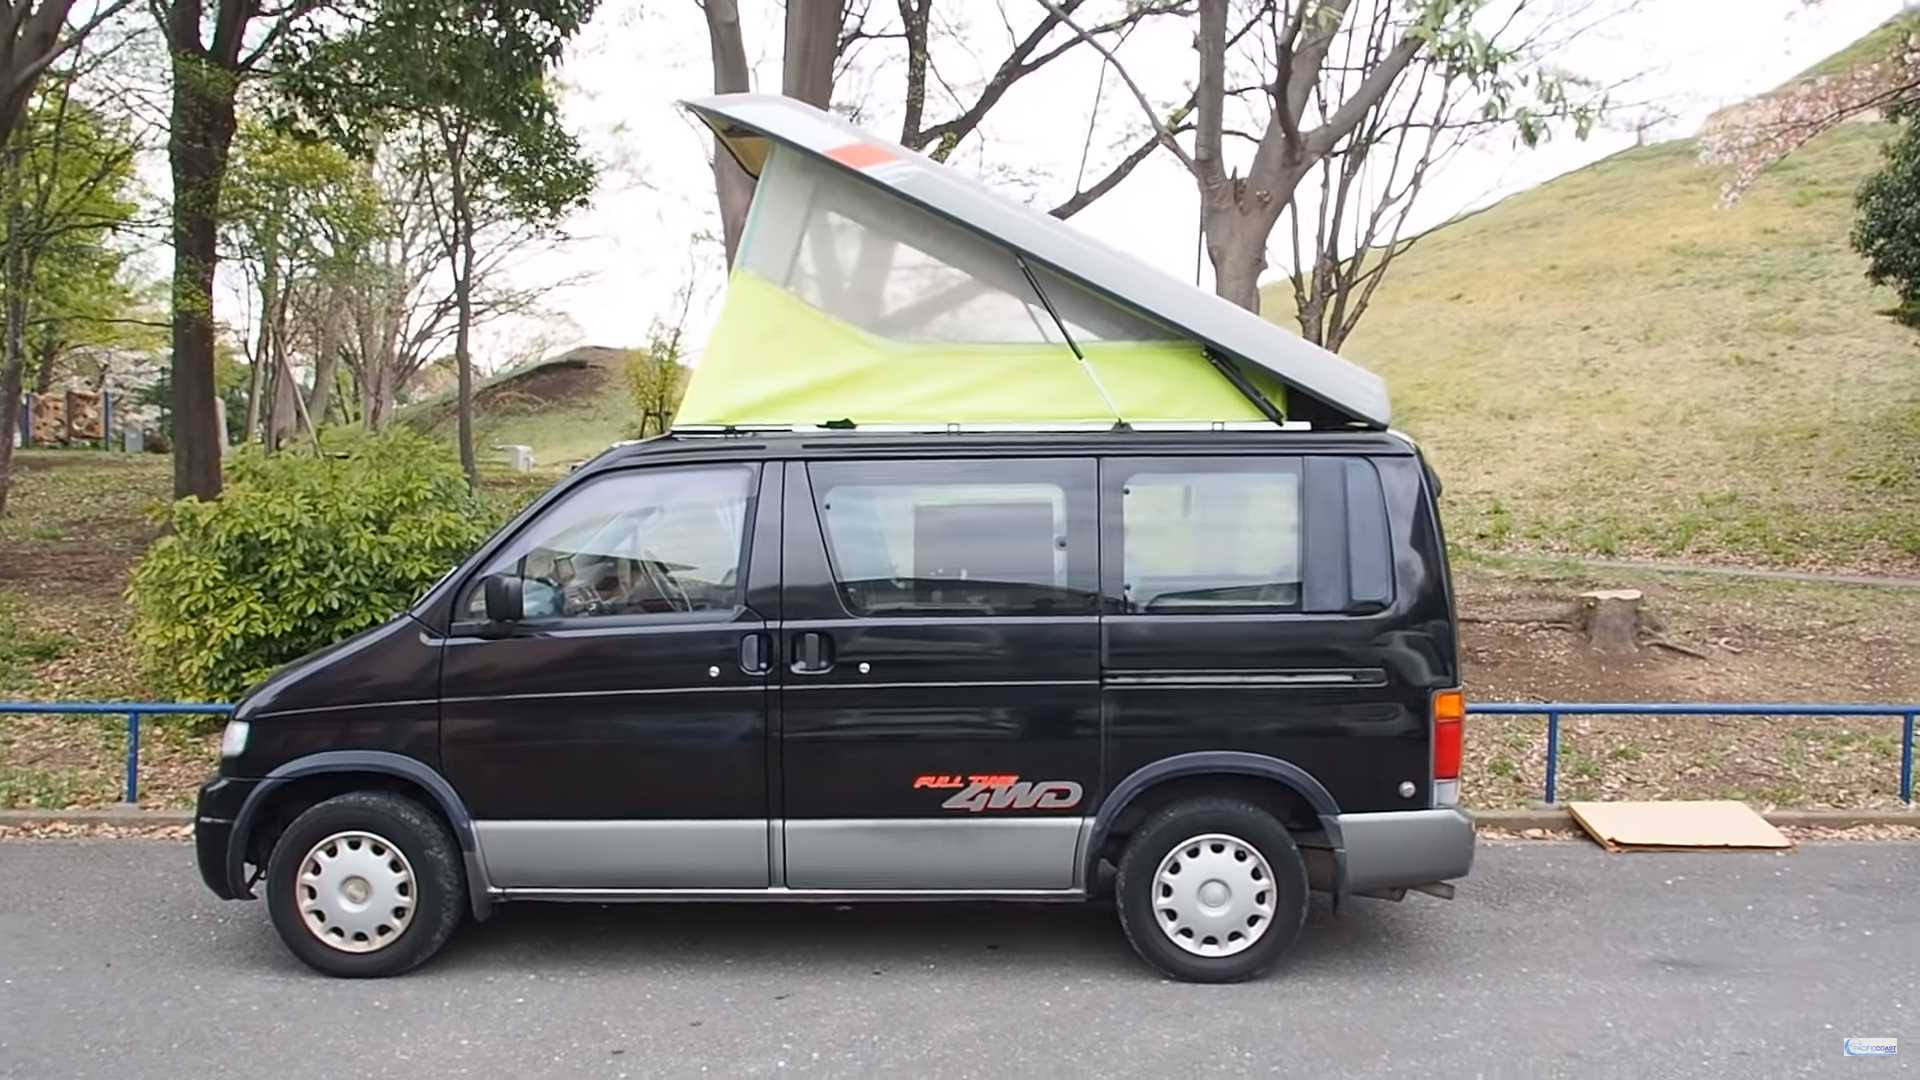 Amazing Ford Camper Van With Rooftop Tent Is Actually An Awd Mazda Diesel Unemploymentrelief Wooden Chair Designs For Living Room Unemploymentrelieforg